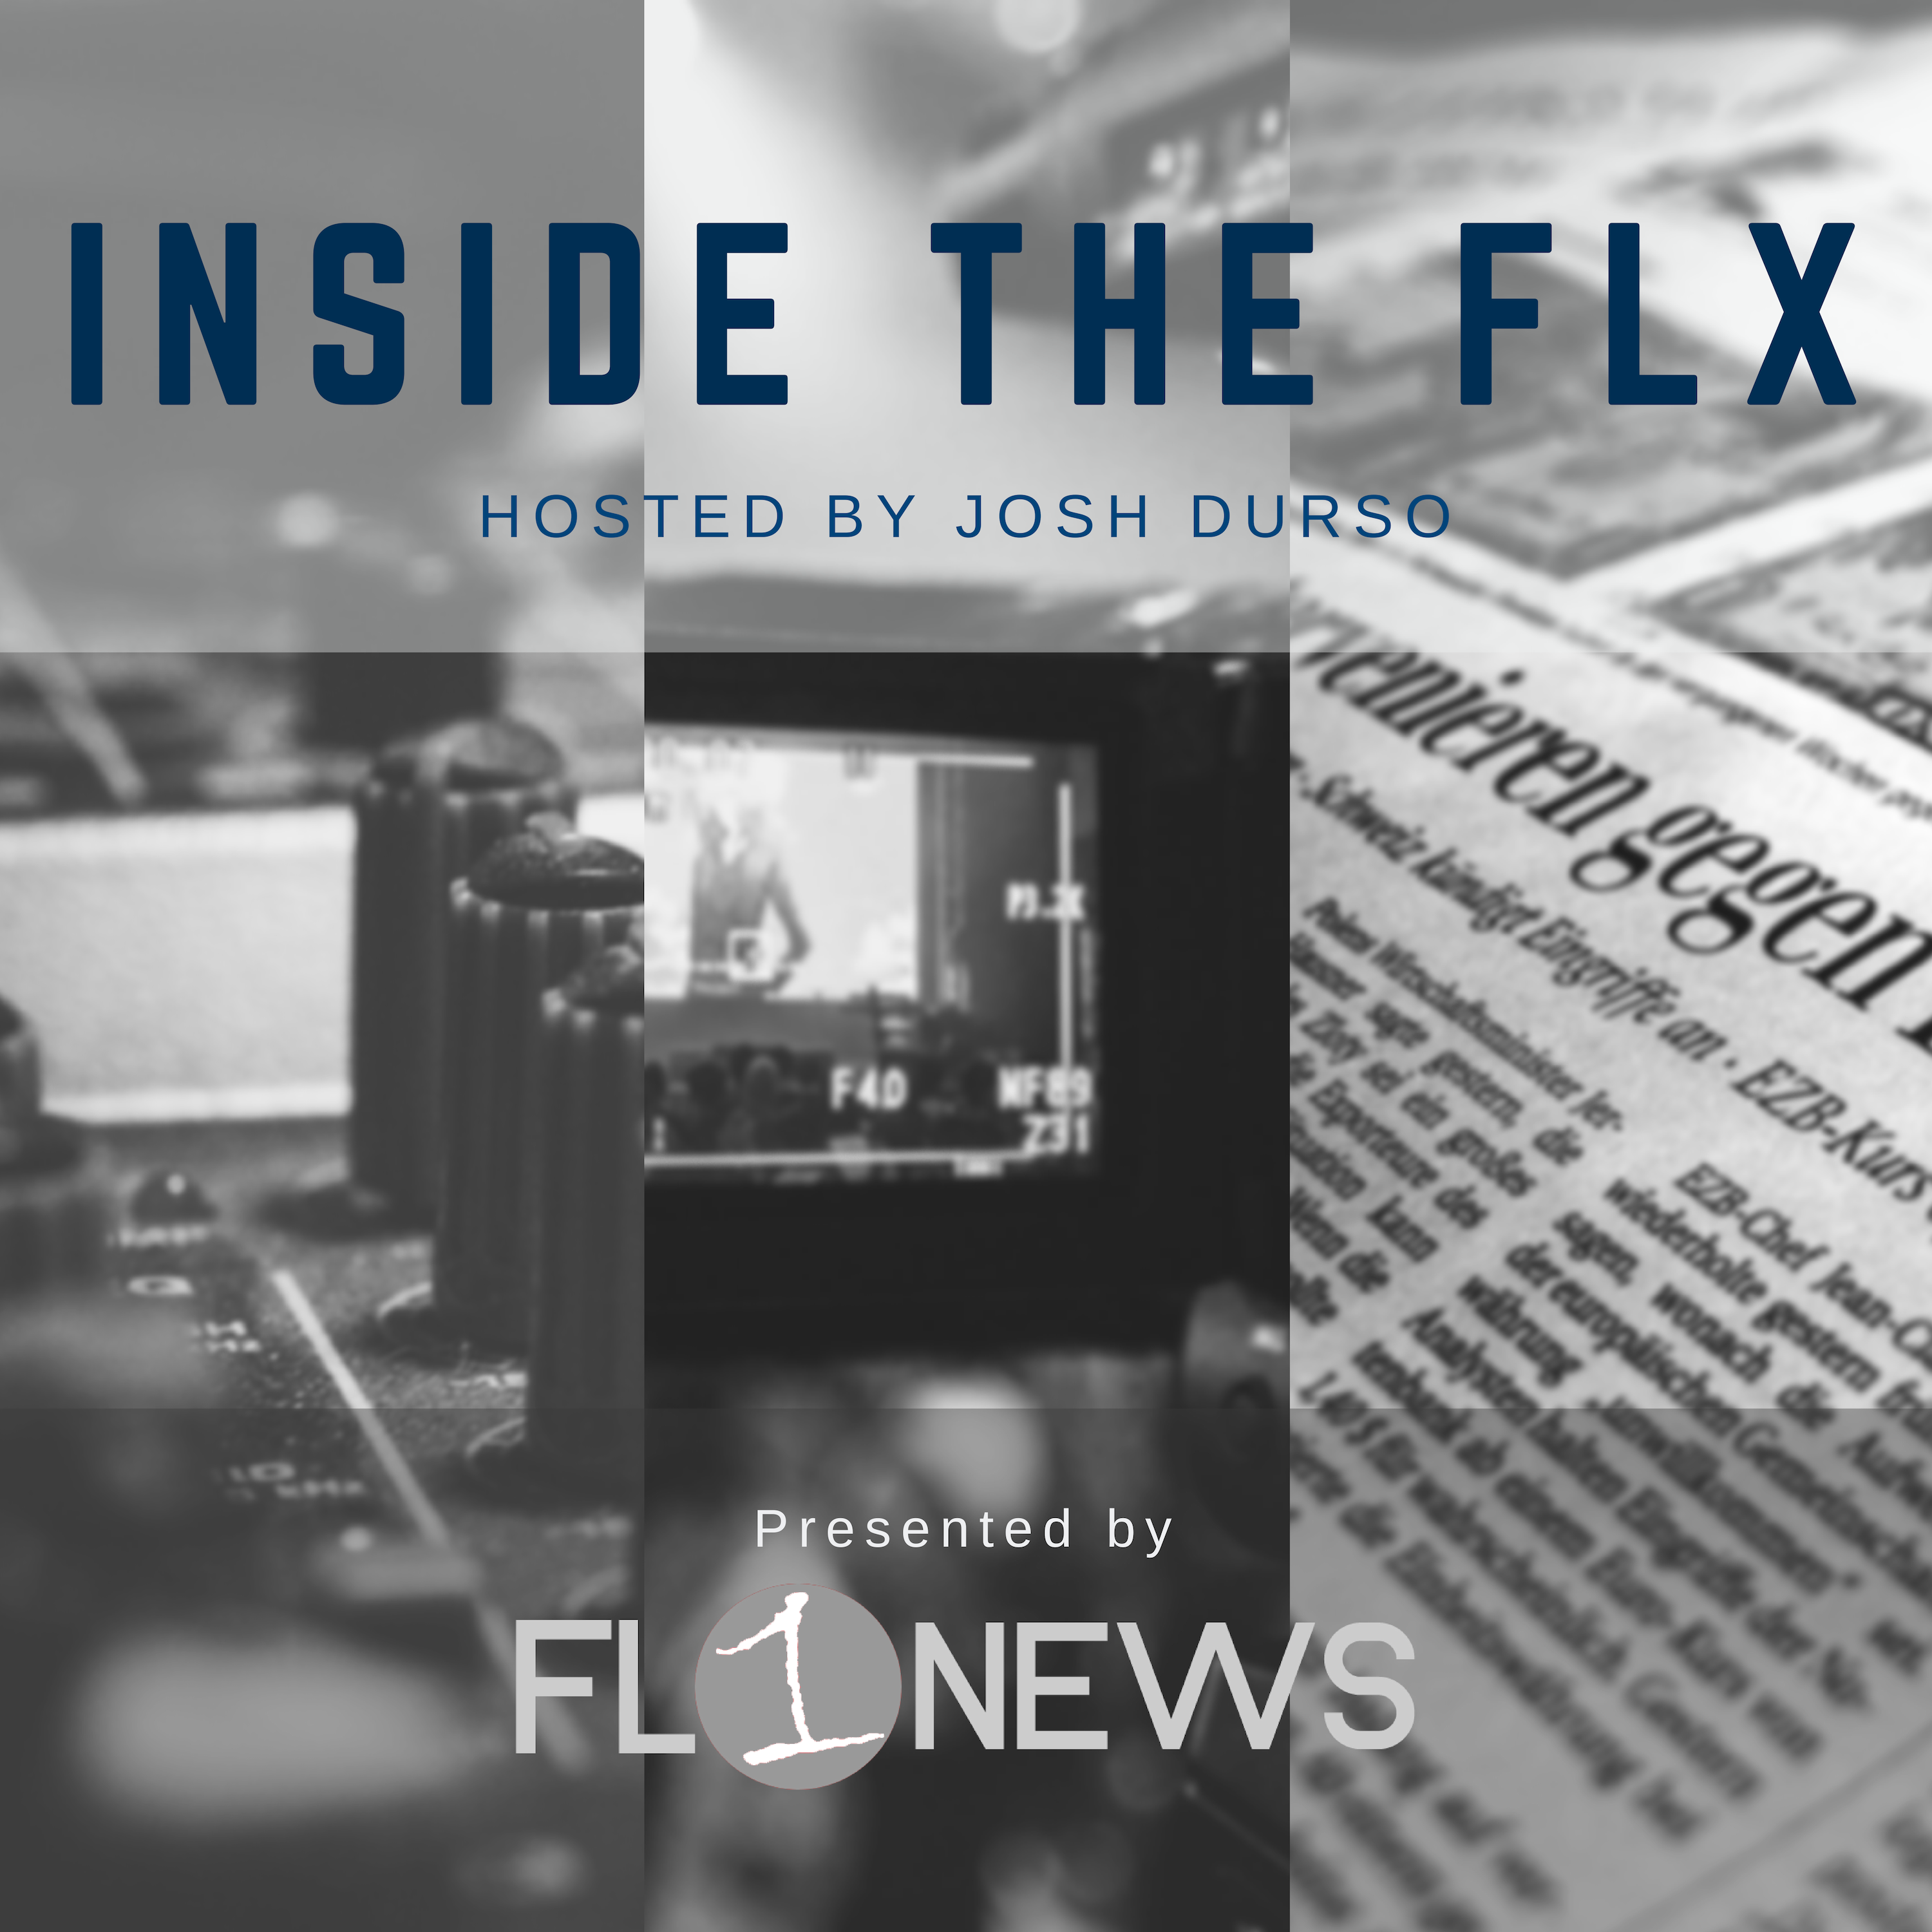 Inside the FLX Podcast presented by FL1 News